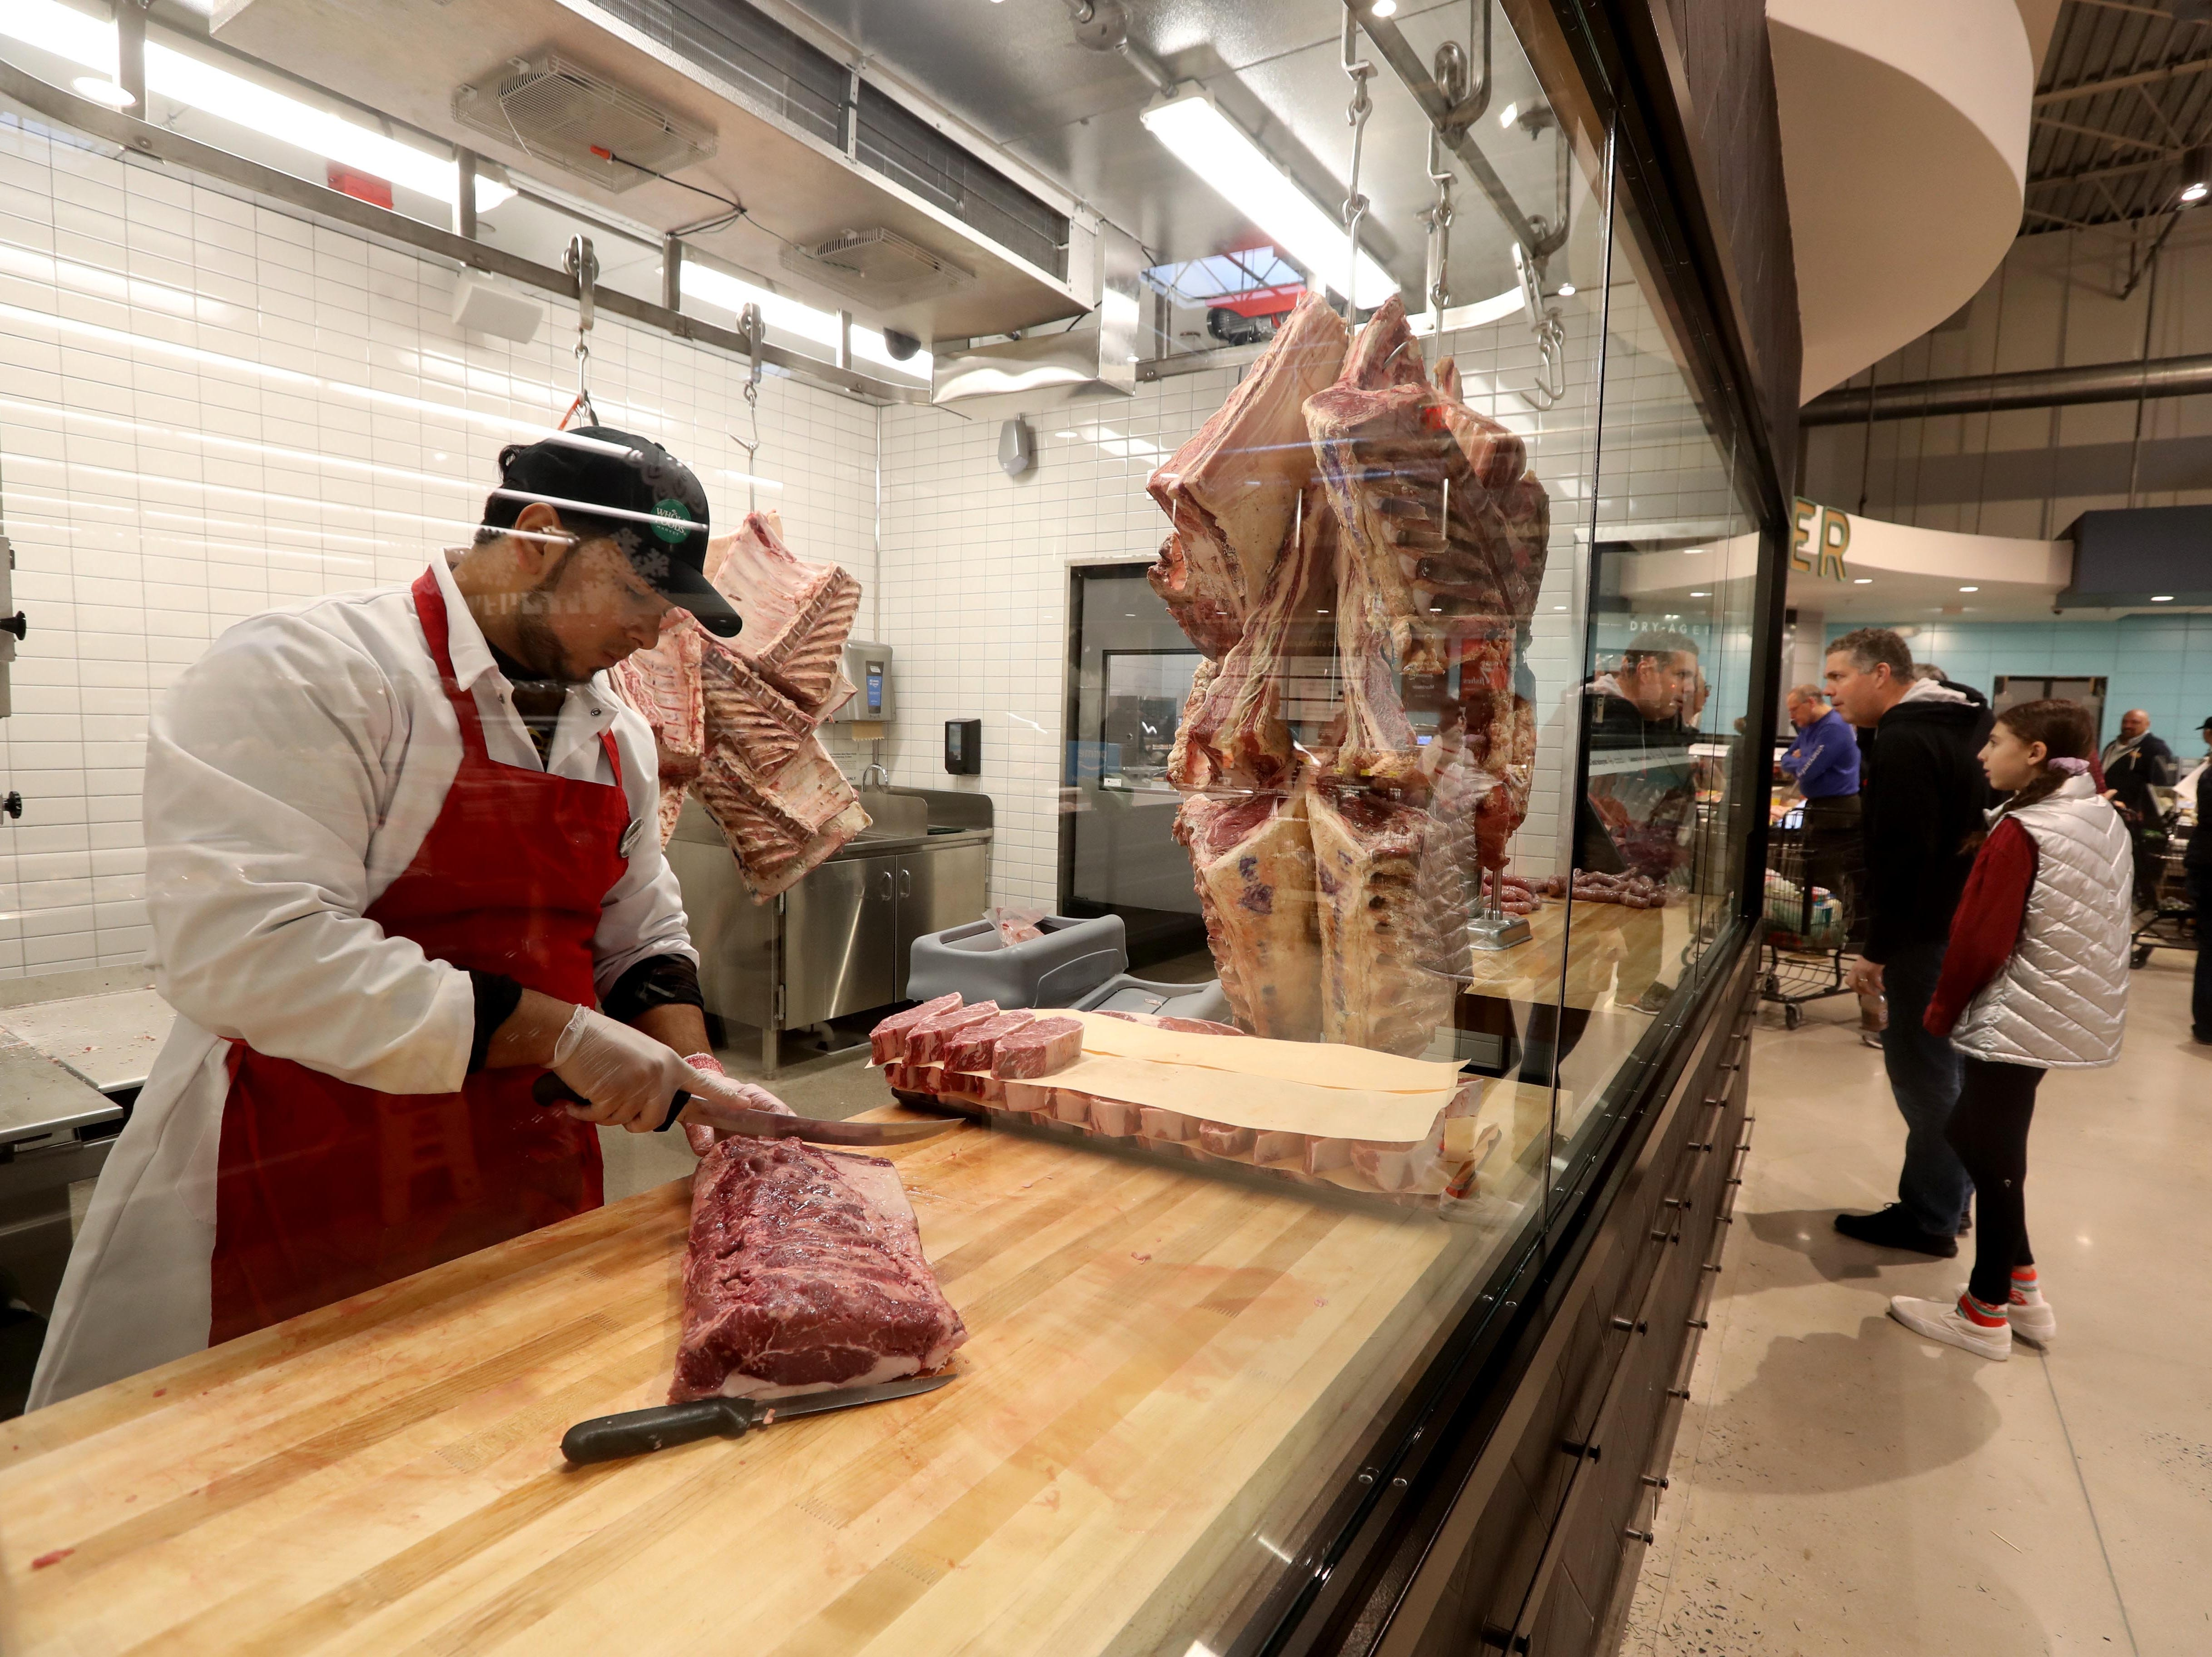 A butcher cuts beef into steaks at the new Whole Foods in Chappaqua Dec. 15, 2018. The 40,000 square foot store opened to shoppers on the site of the formers Readers Digest headquarters. The New Castle Town Board and Planning Board approved a temporary traffic plan for the Route 117-Roaring Brook Road intersection that allowed the store to open.